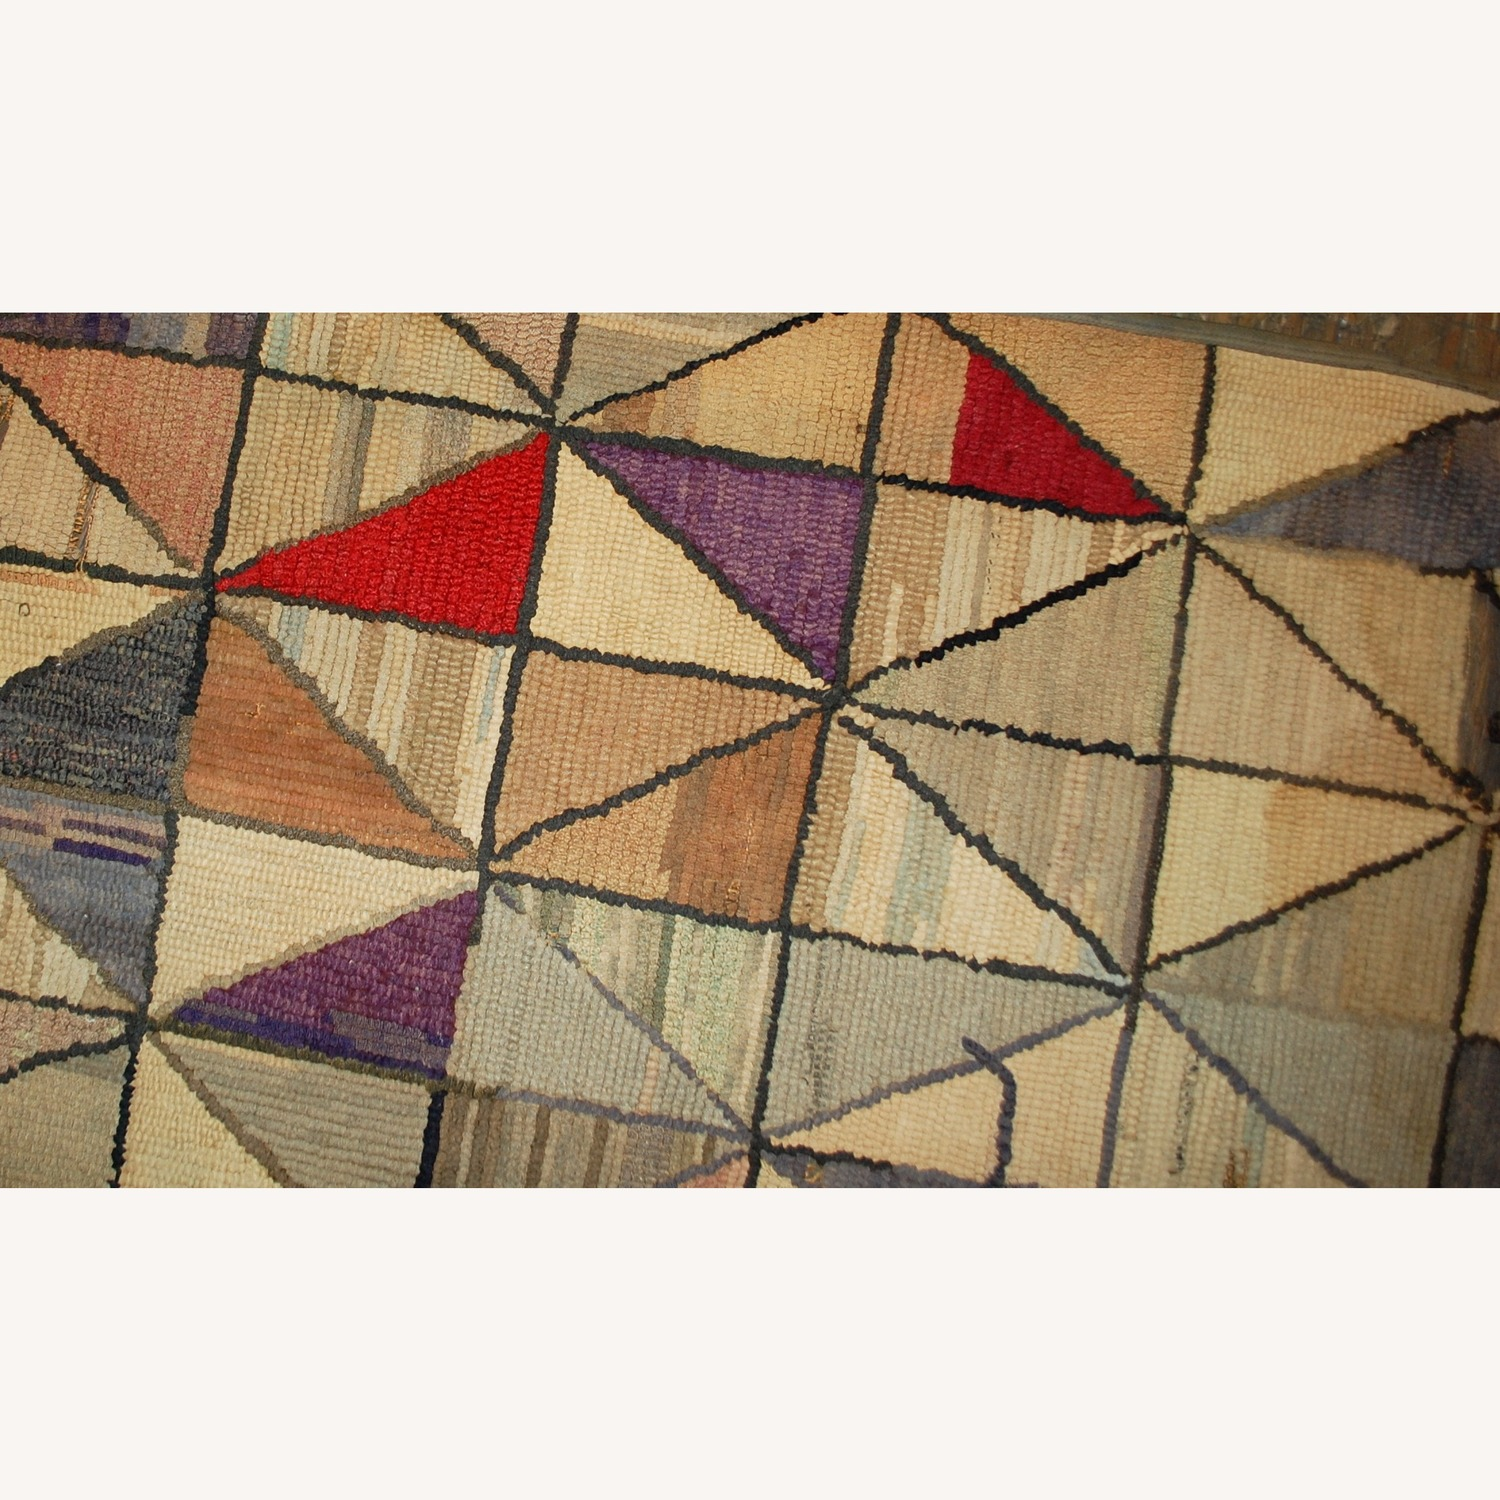 Handmade Antique square American Hooked Rug - image-5